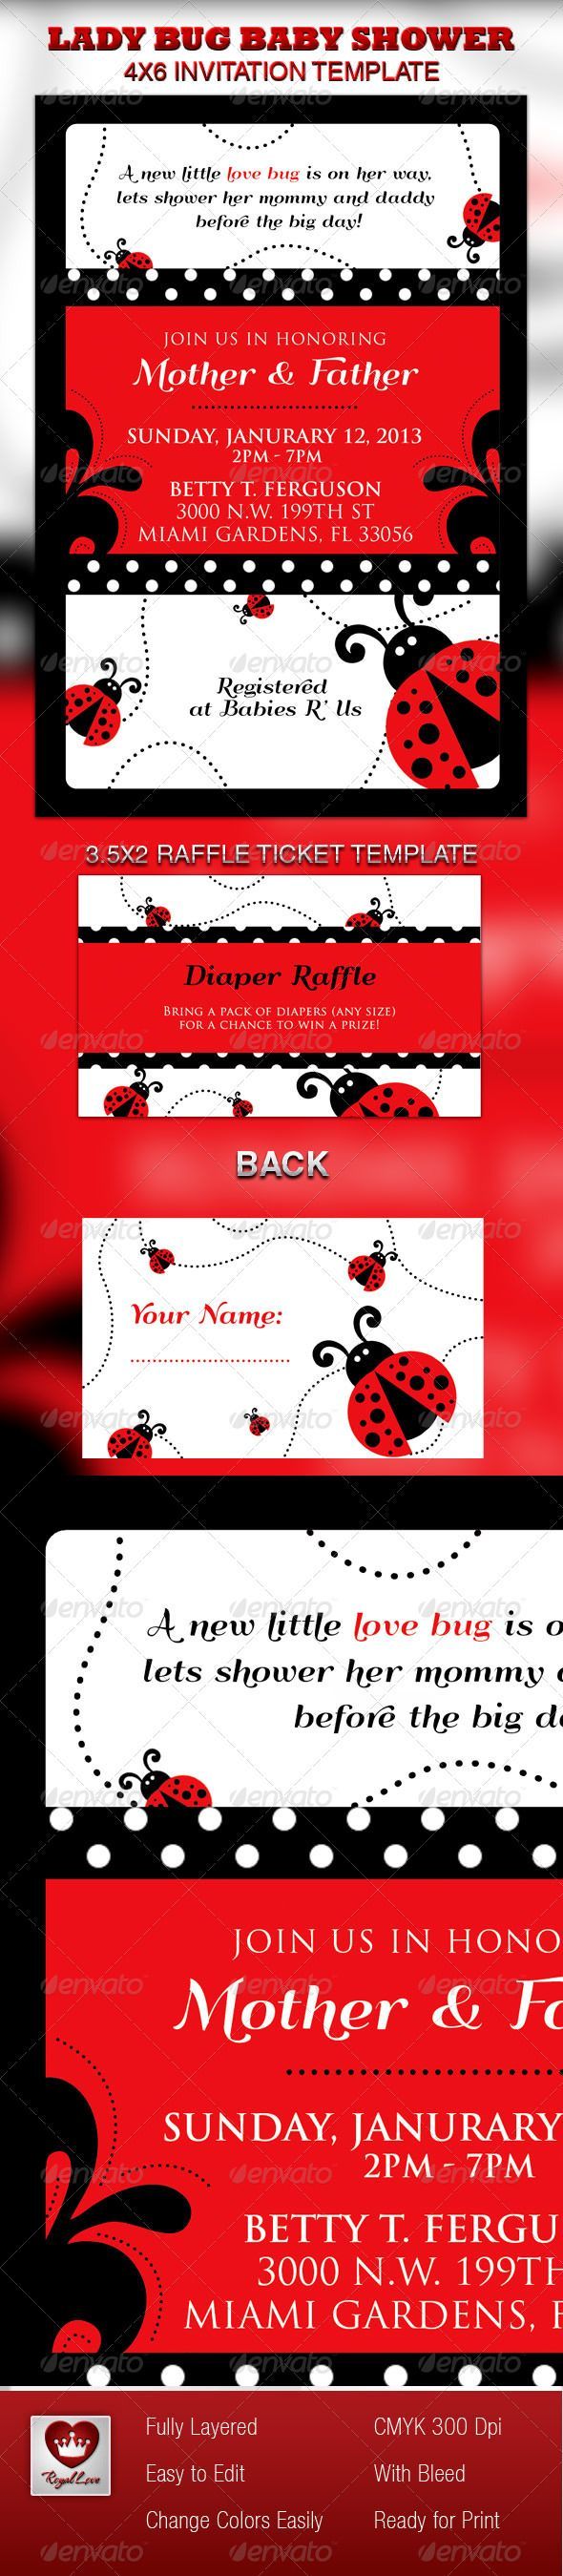 Lady Bug Baby Shower Invitation & Raffle Ticket | Pinterest | Raffle ...